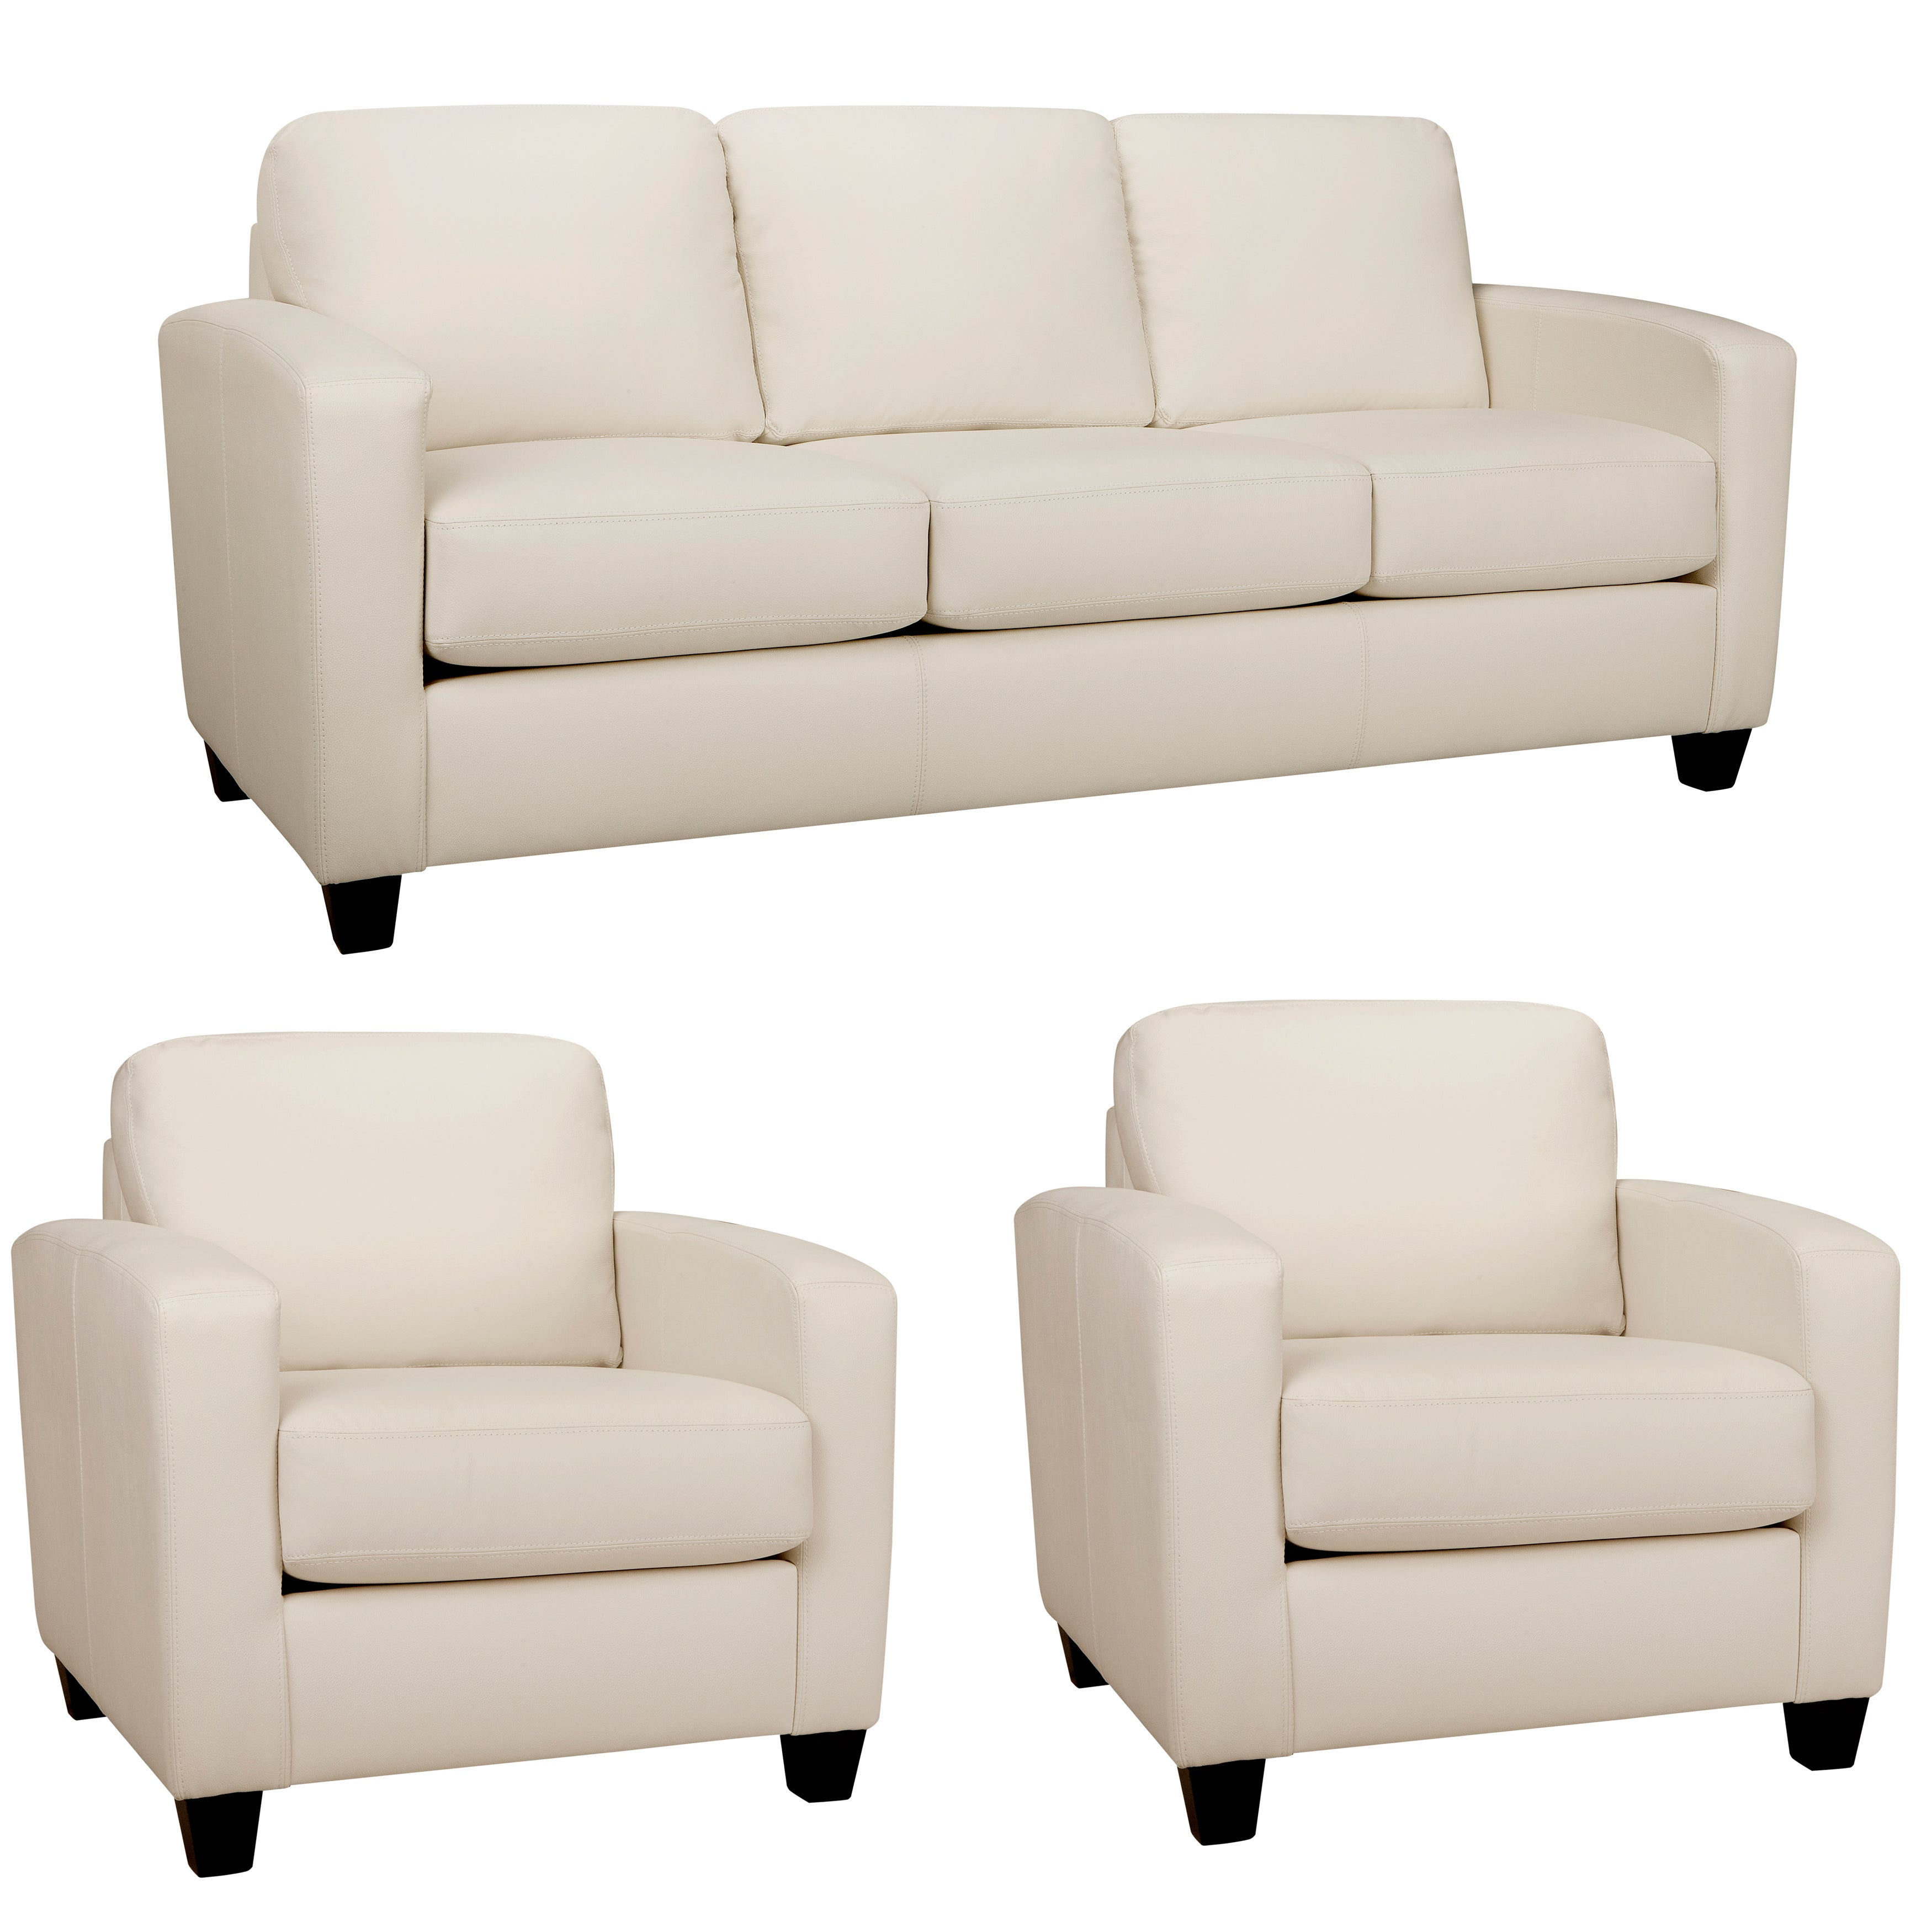 Bryce White Italian Leather Sofa And Two Chairs Free Shipping